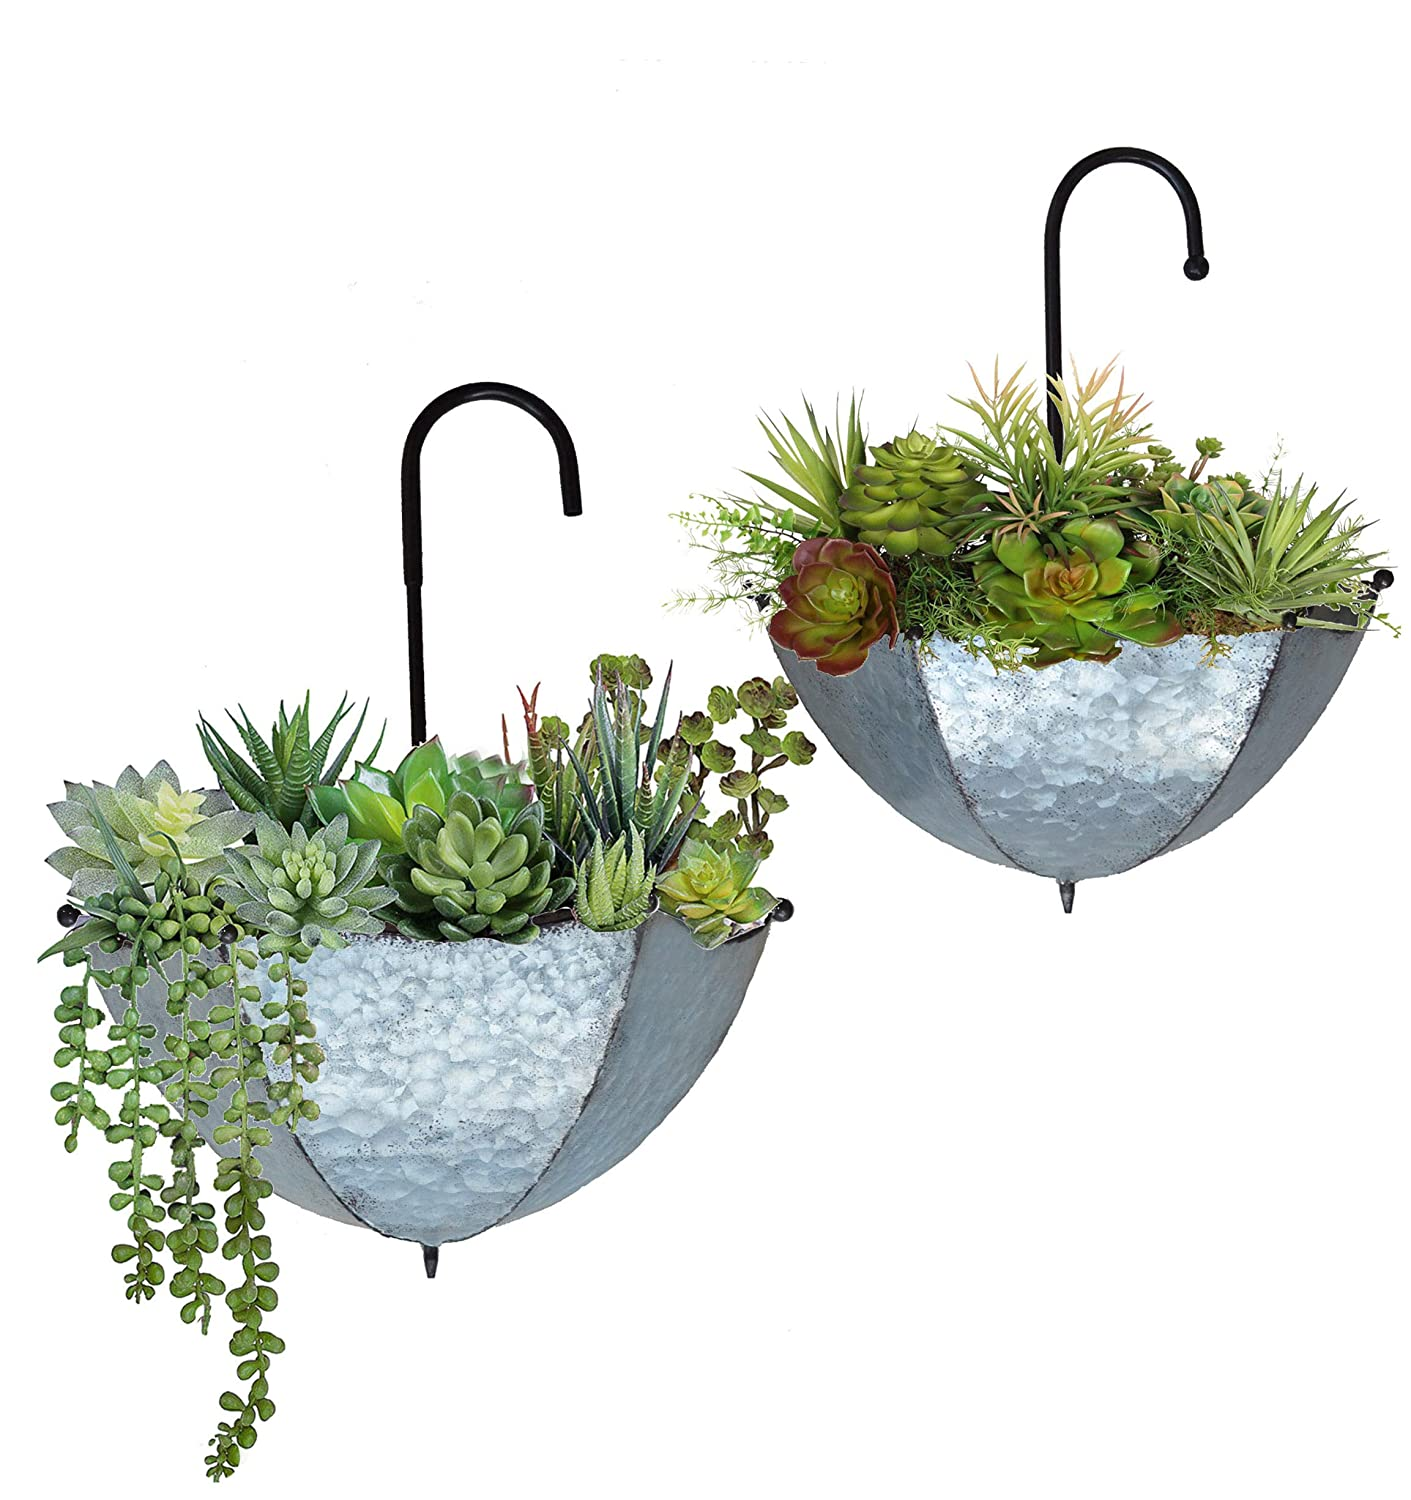 GIFTME 5 Set of 2 Galvanized Metal Umbrella Hanging Wall Planter Flower Holder Indoor or Outdoor Garden Succulent Wall Planter Set